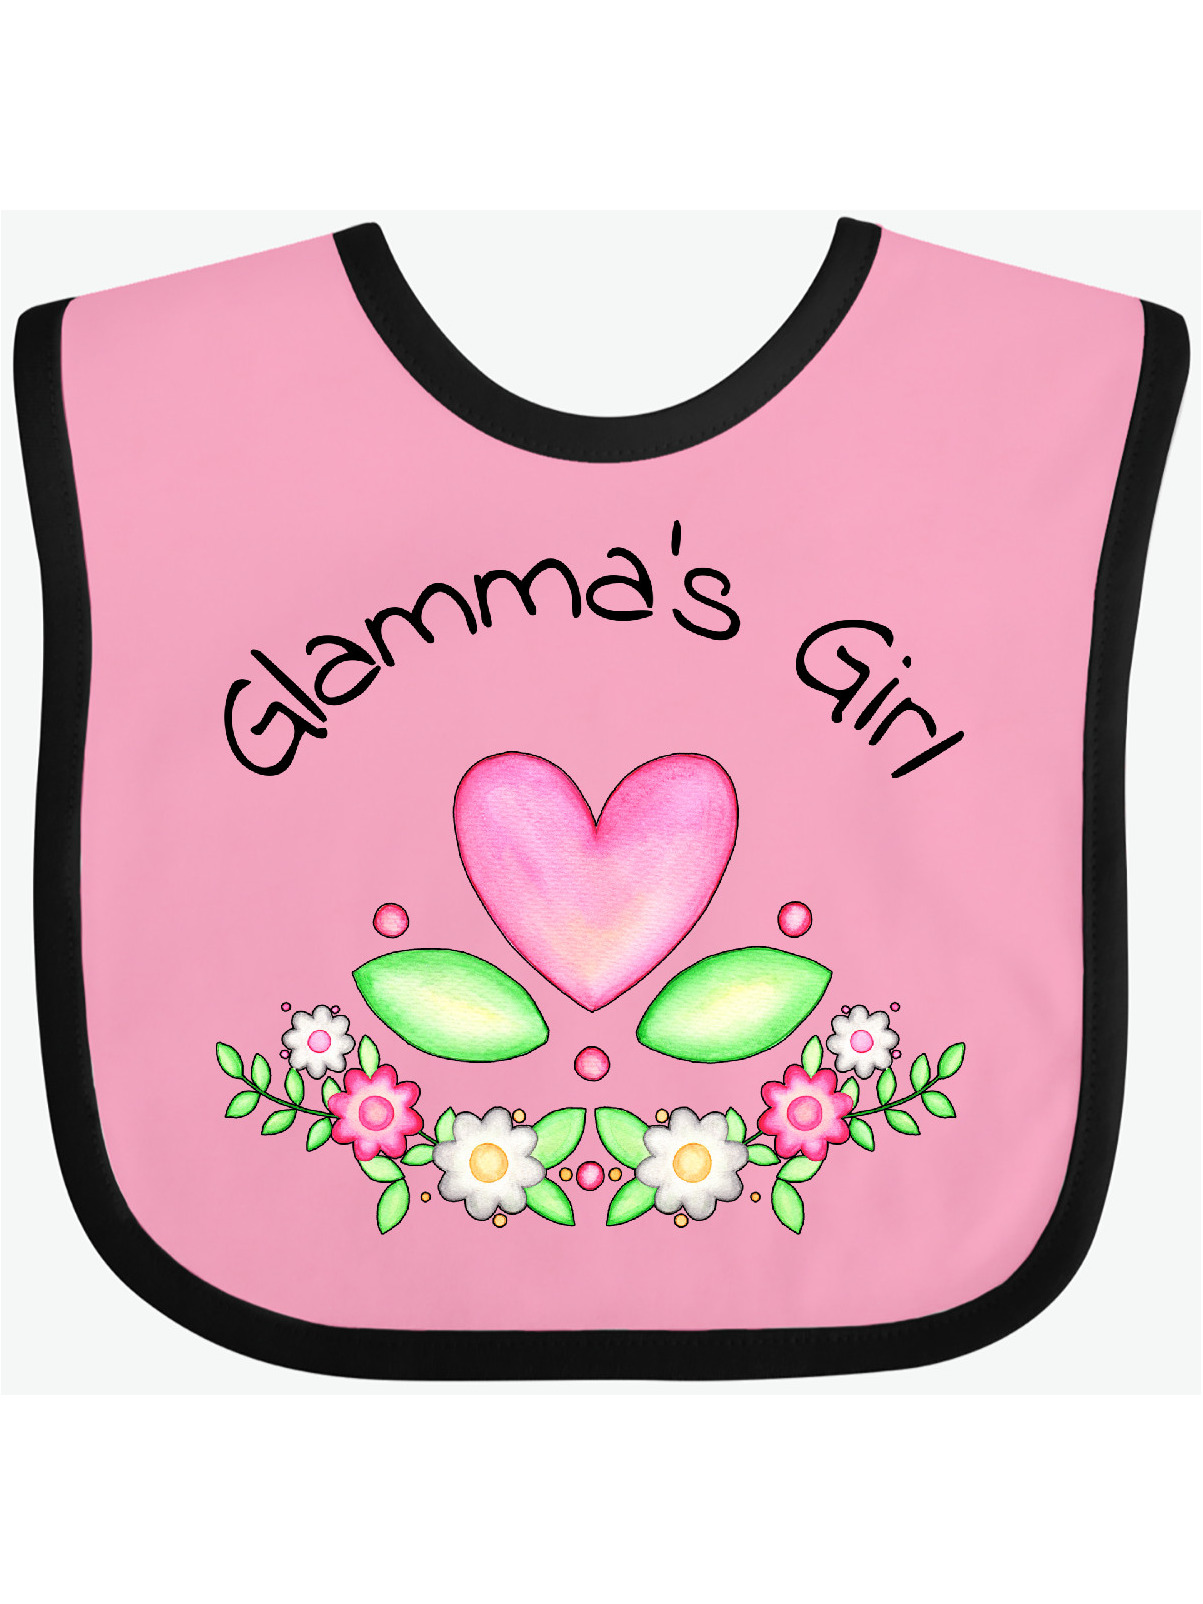 Toddler /& Baby Bibs Burp Cloths I Get My Style from Glamma with Star Cotton Items for Girl Boy A White Custom Text Here